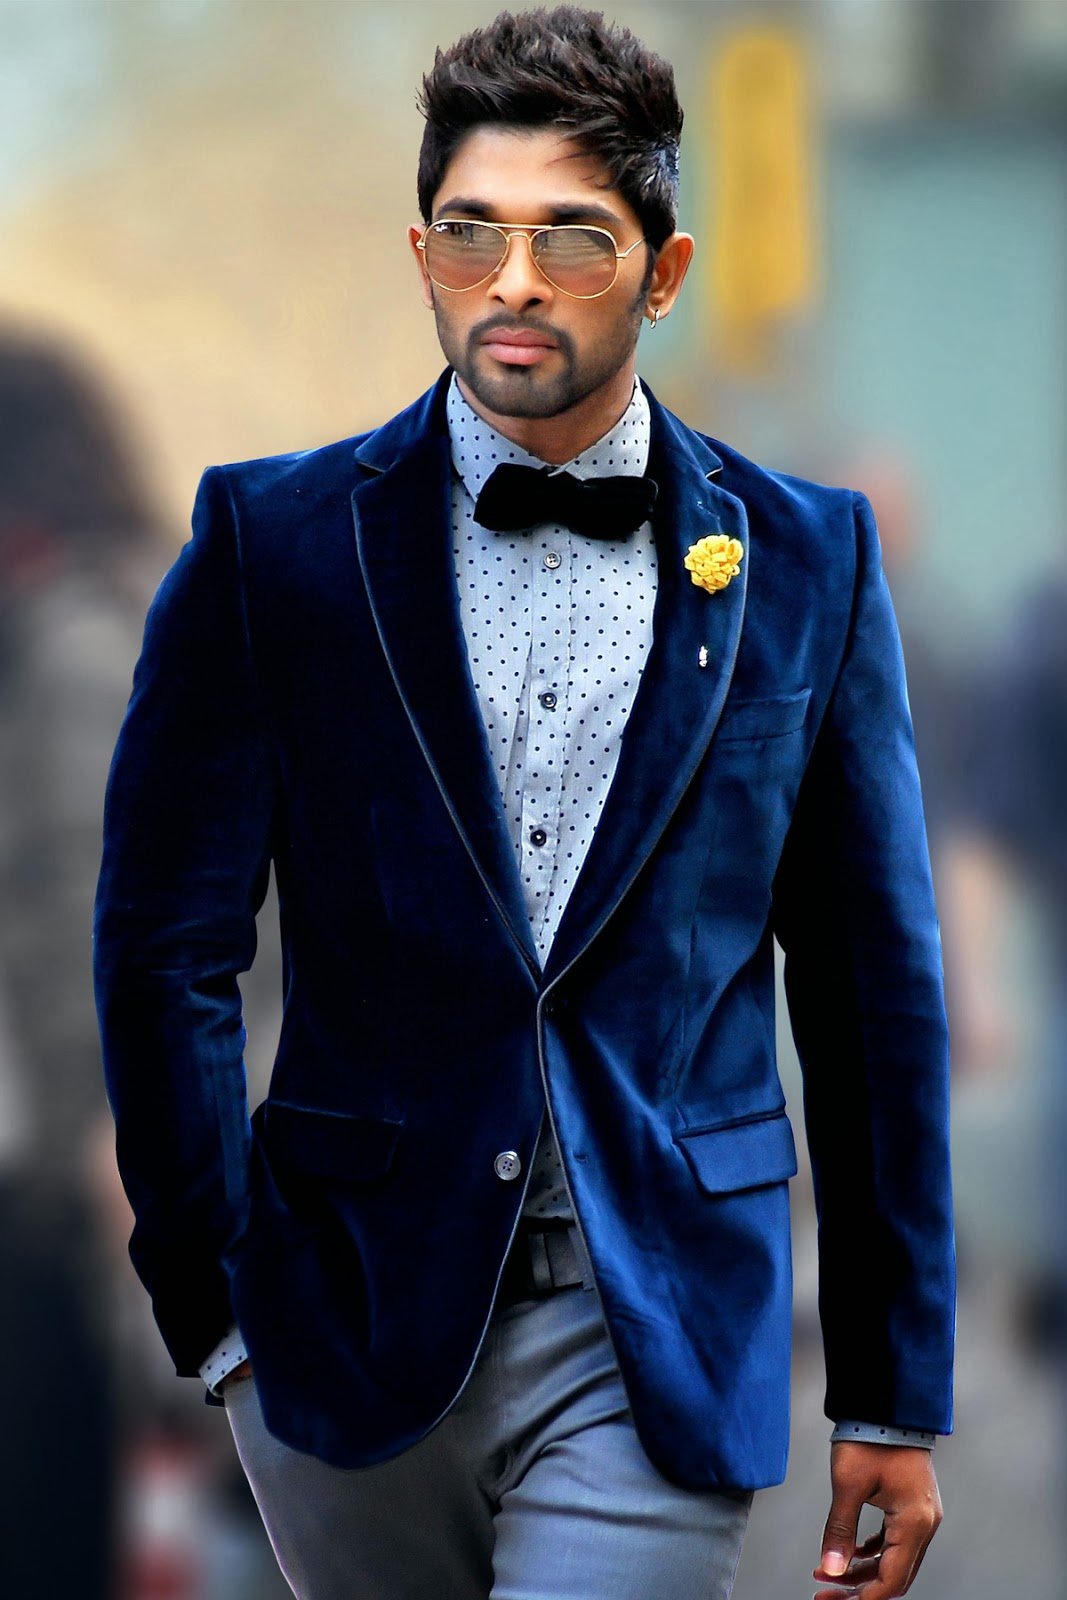 south actor allu arjun hd wallpapers, images and pictures